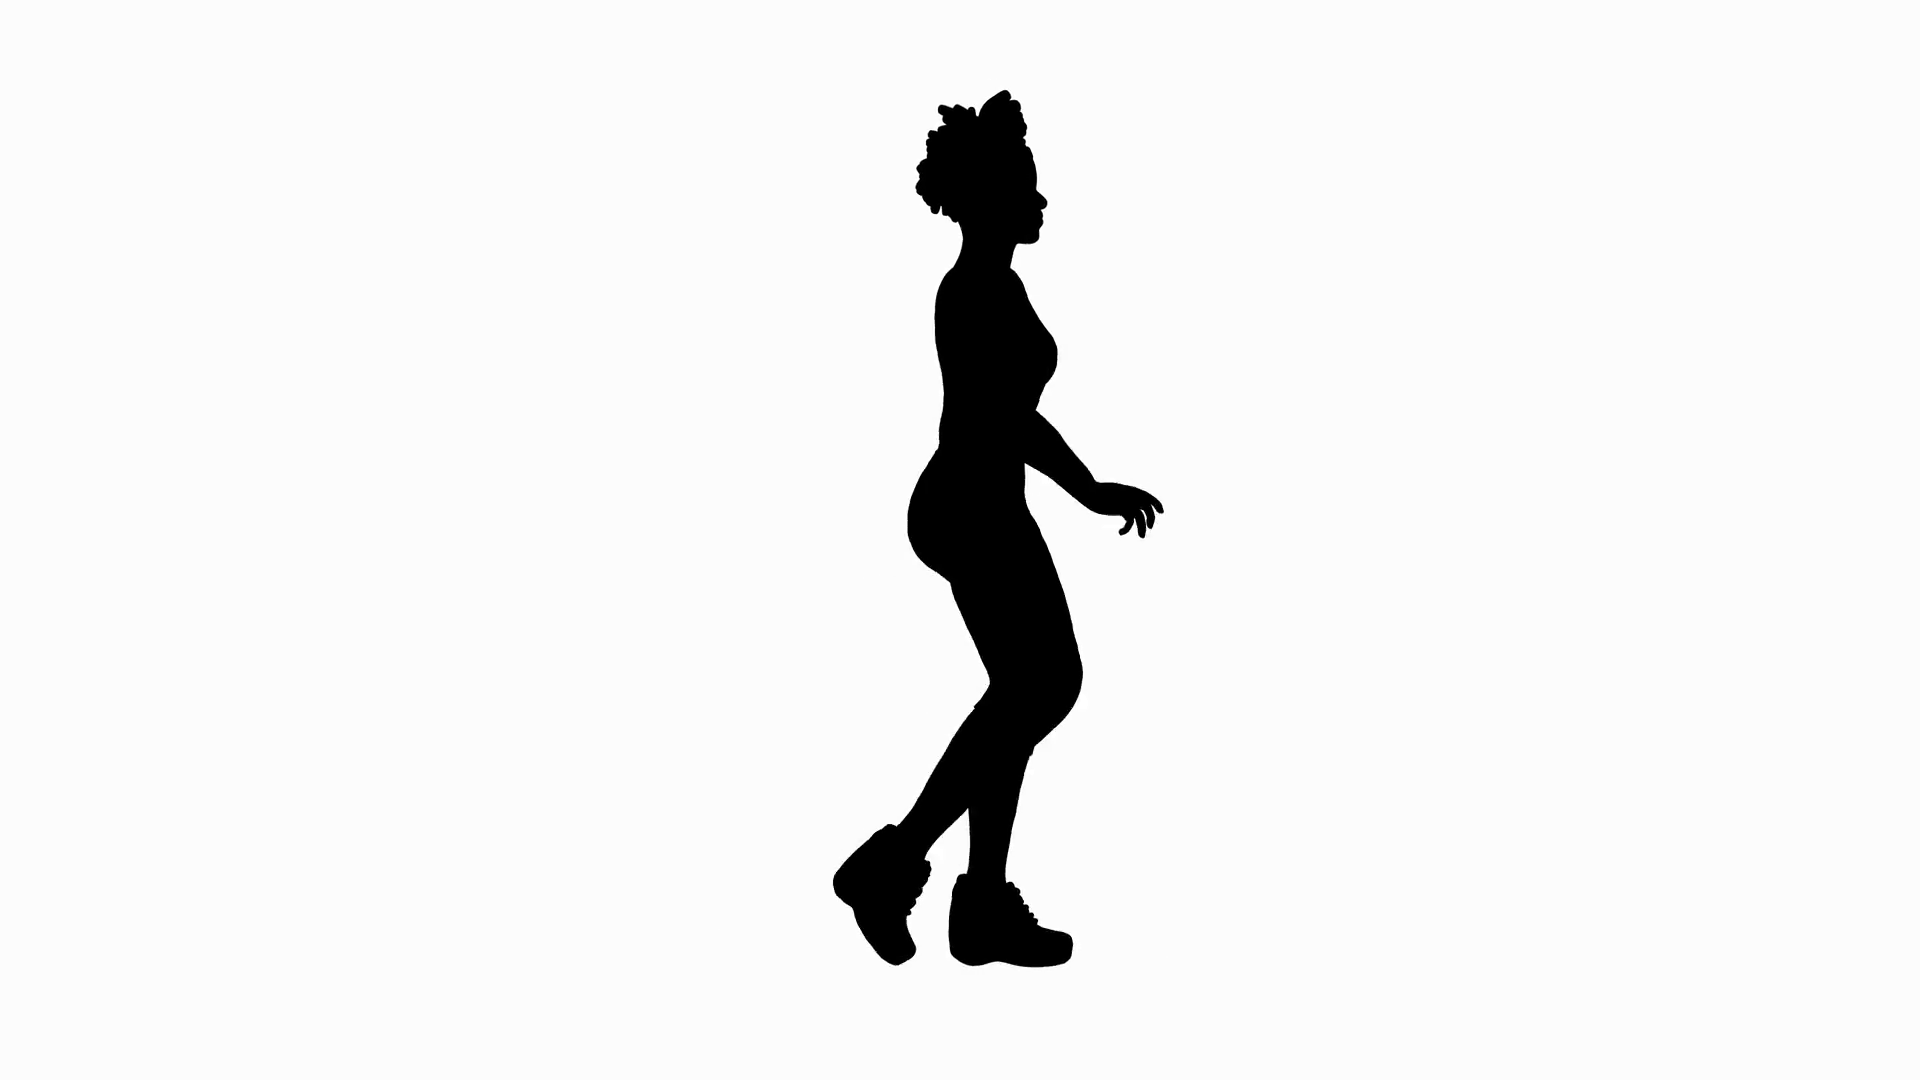 1920x1080 Animated Silhouette Of A Walking Woman. Includes Alpha Channel